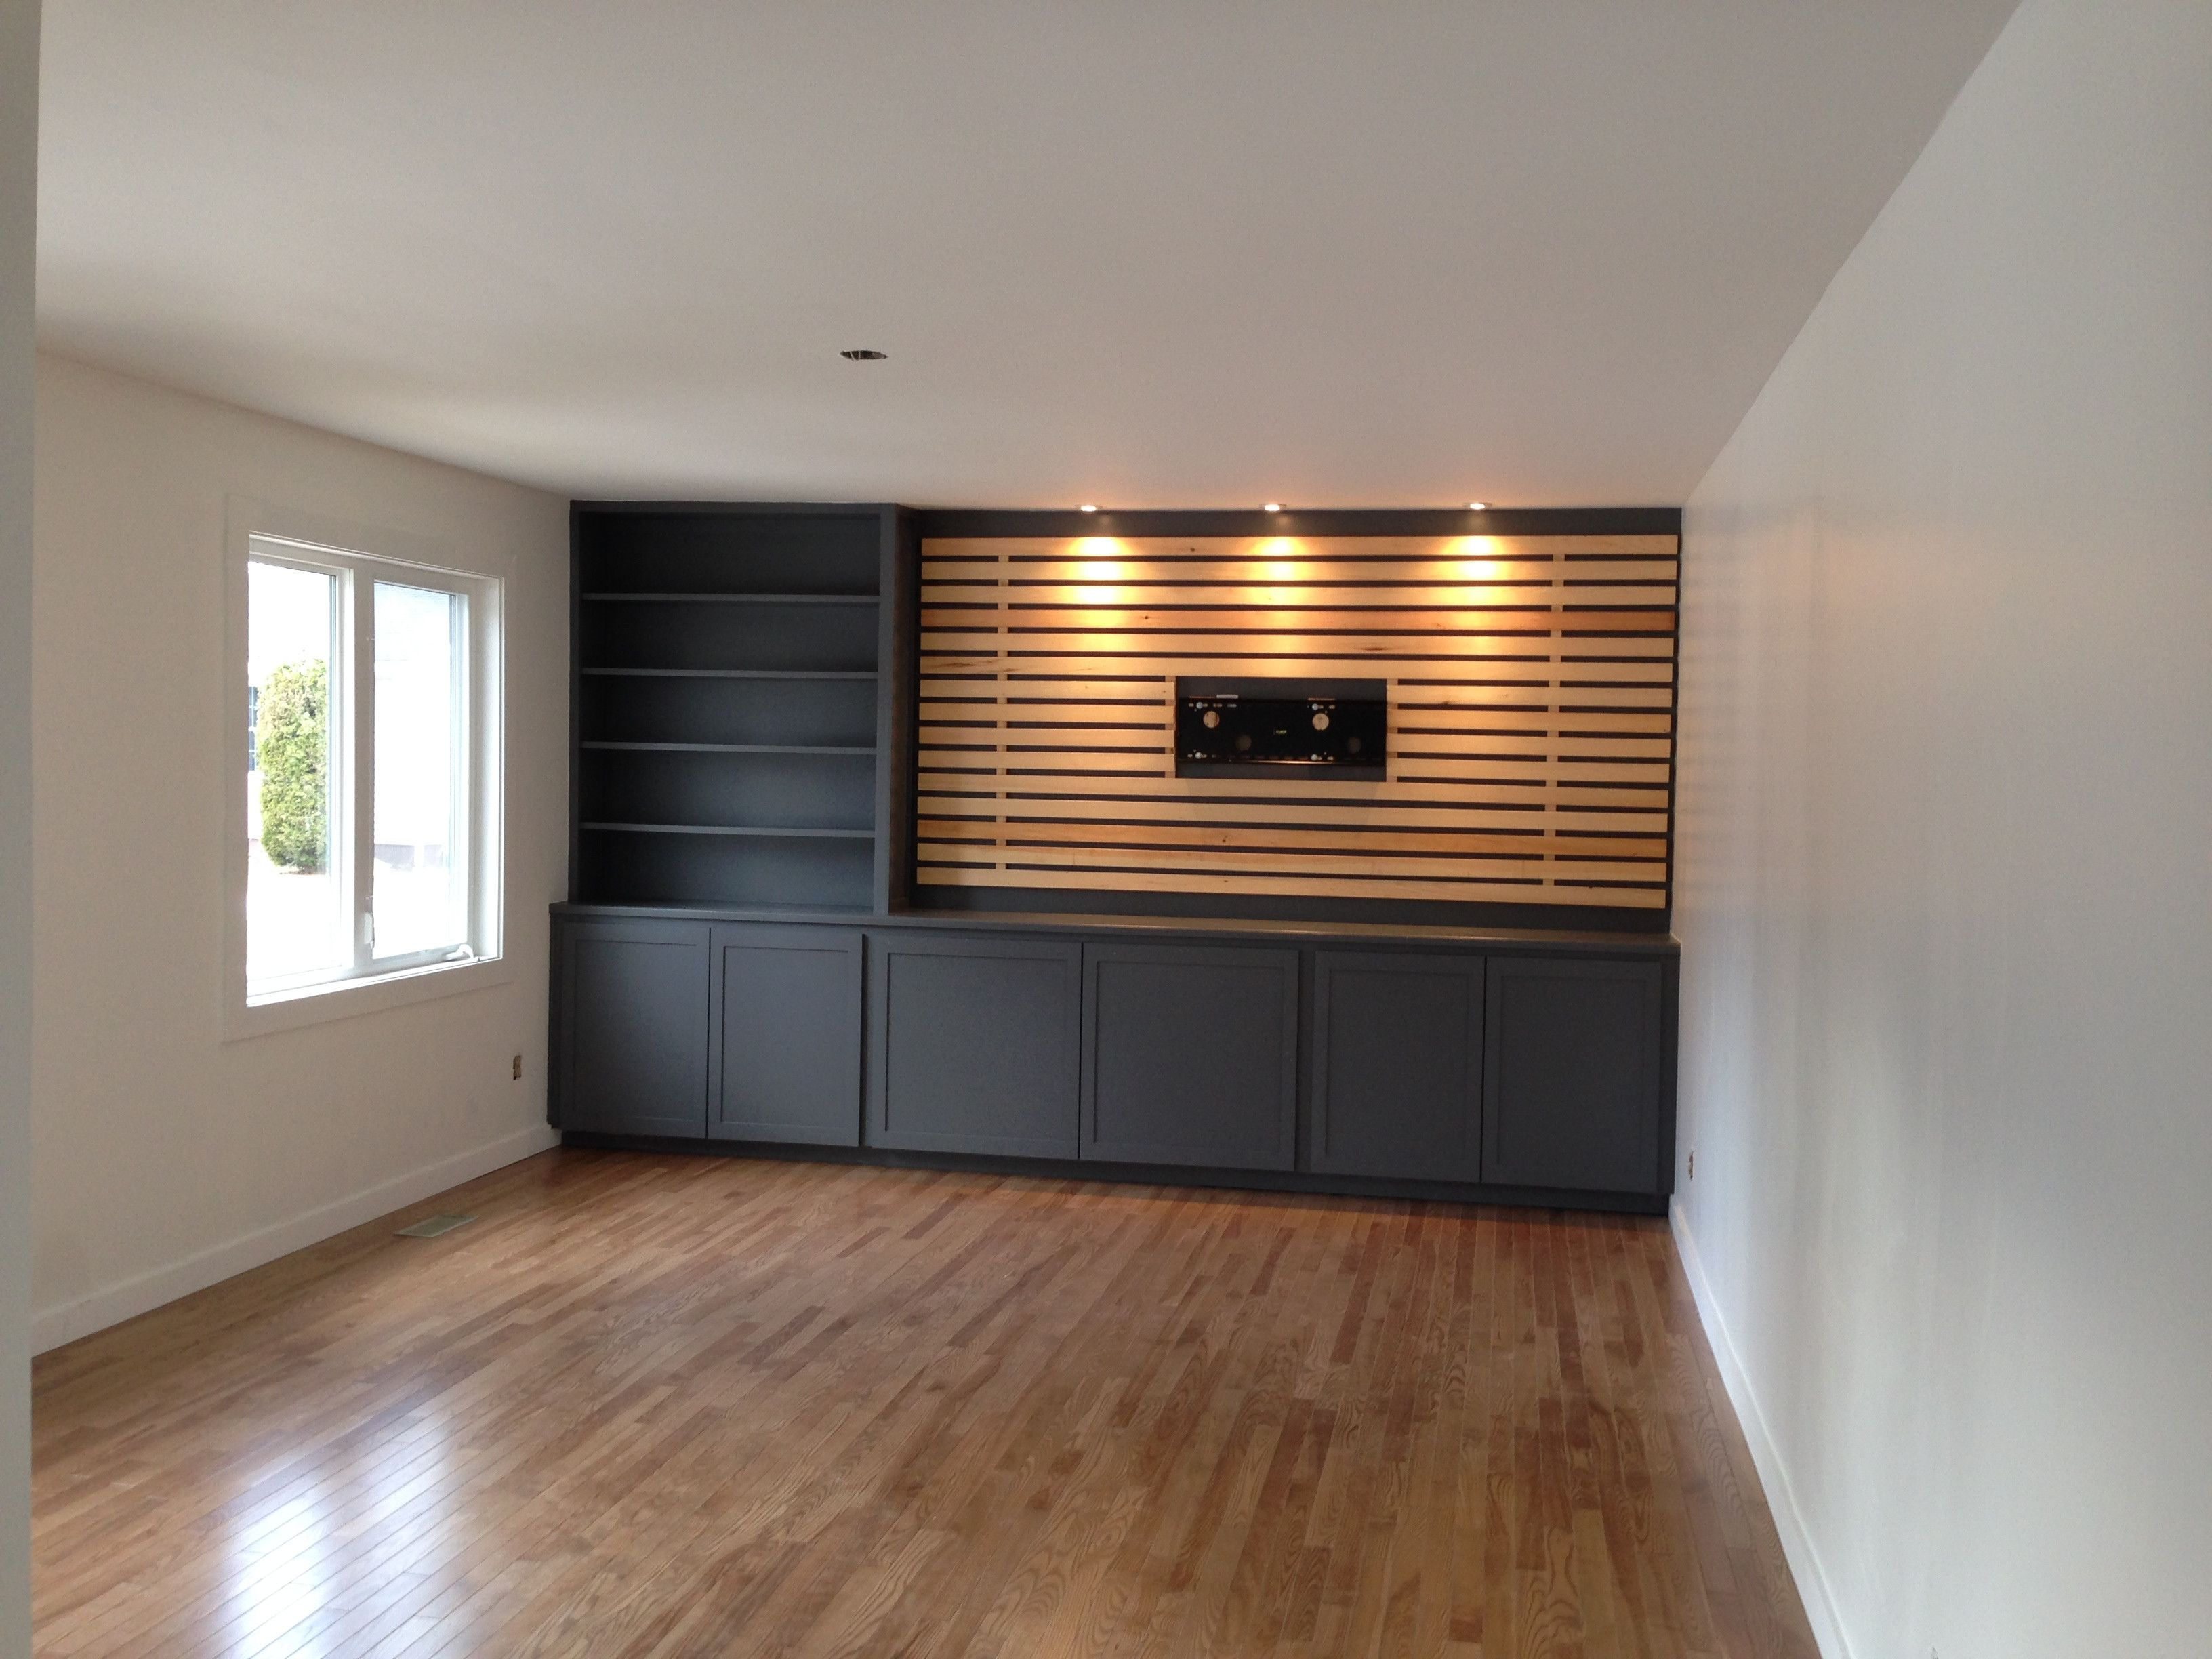 Diy Wood Slats Tv Accent Wall By Reimagine In 2020 Wood Slat Wall Wood Accent Wall Slat Wall